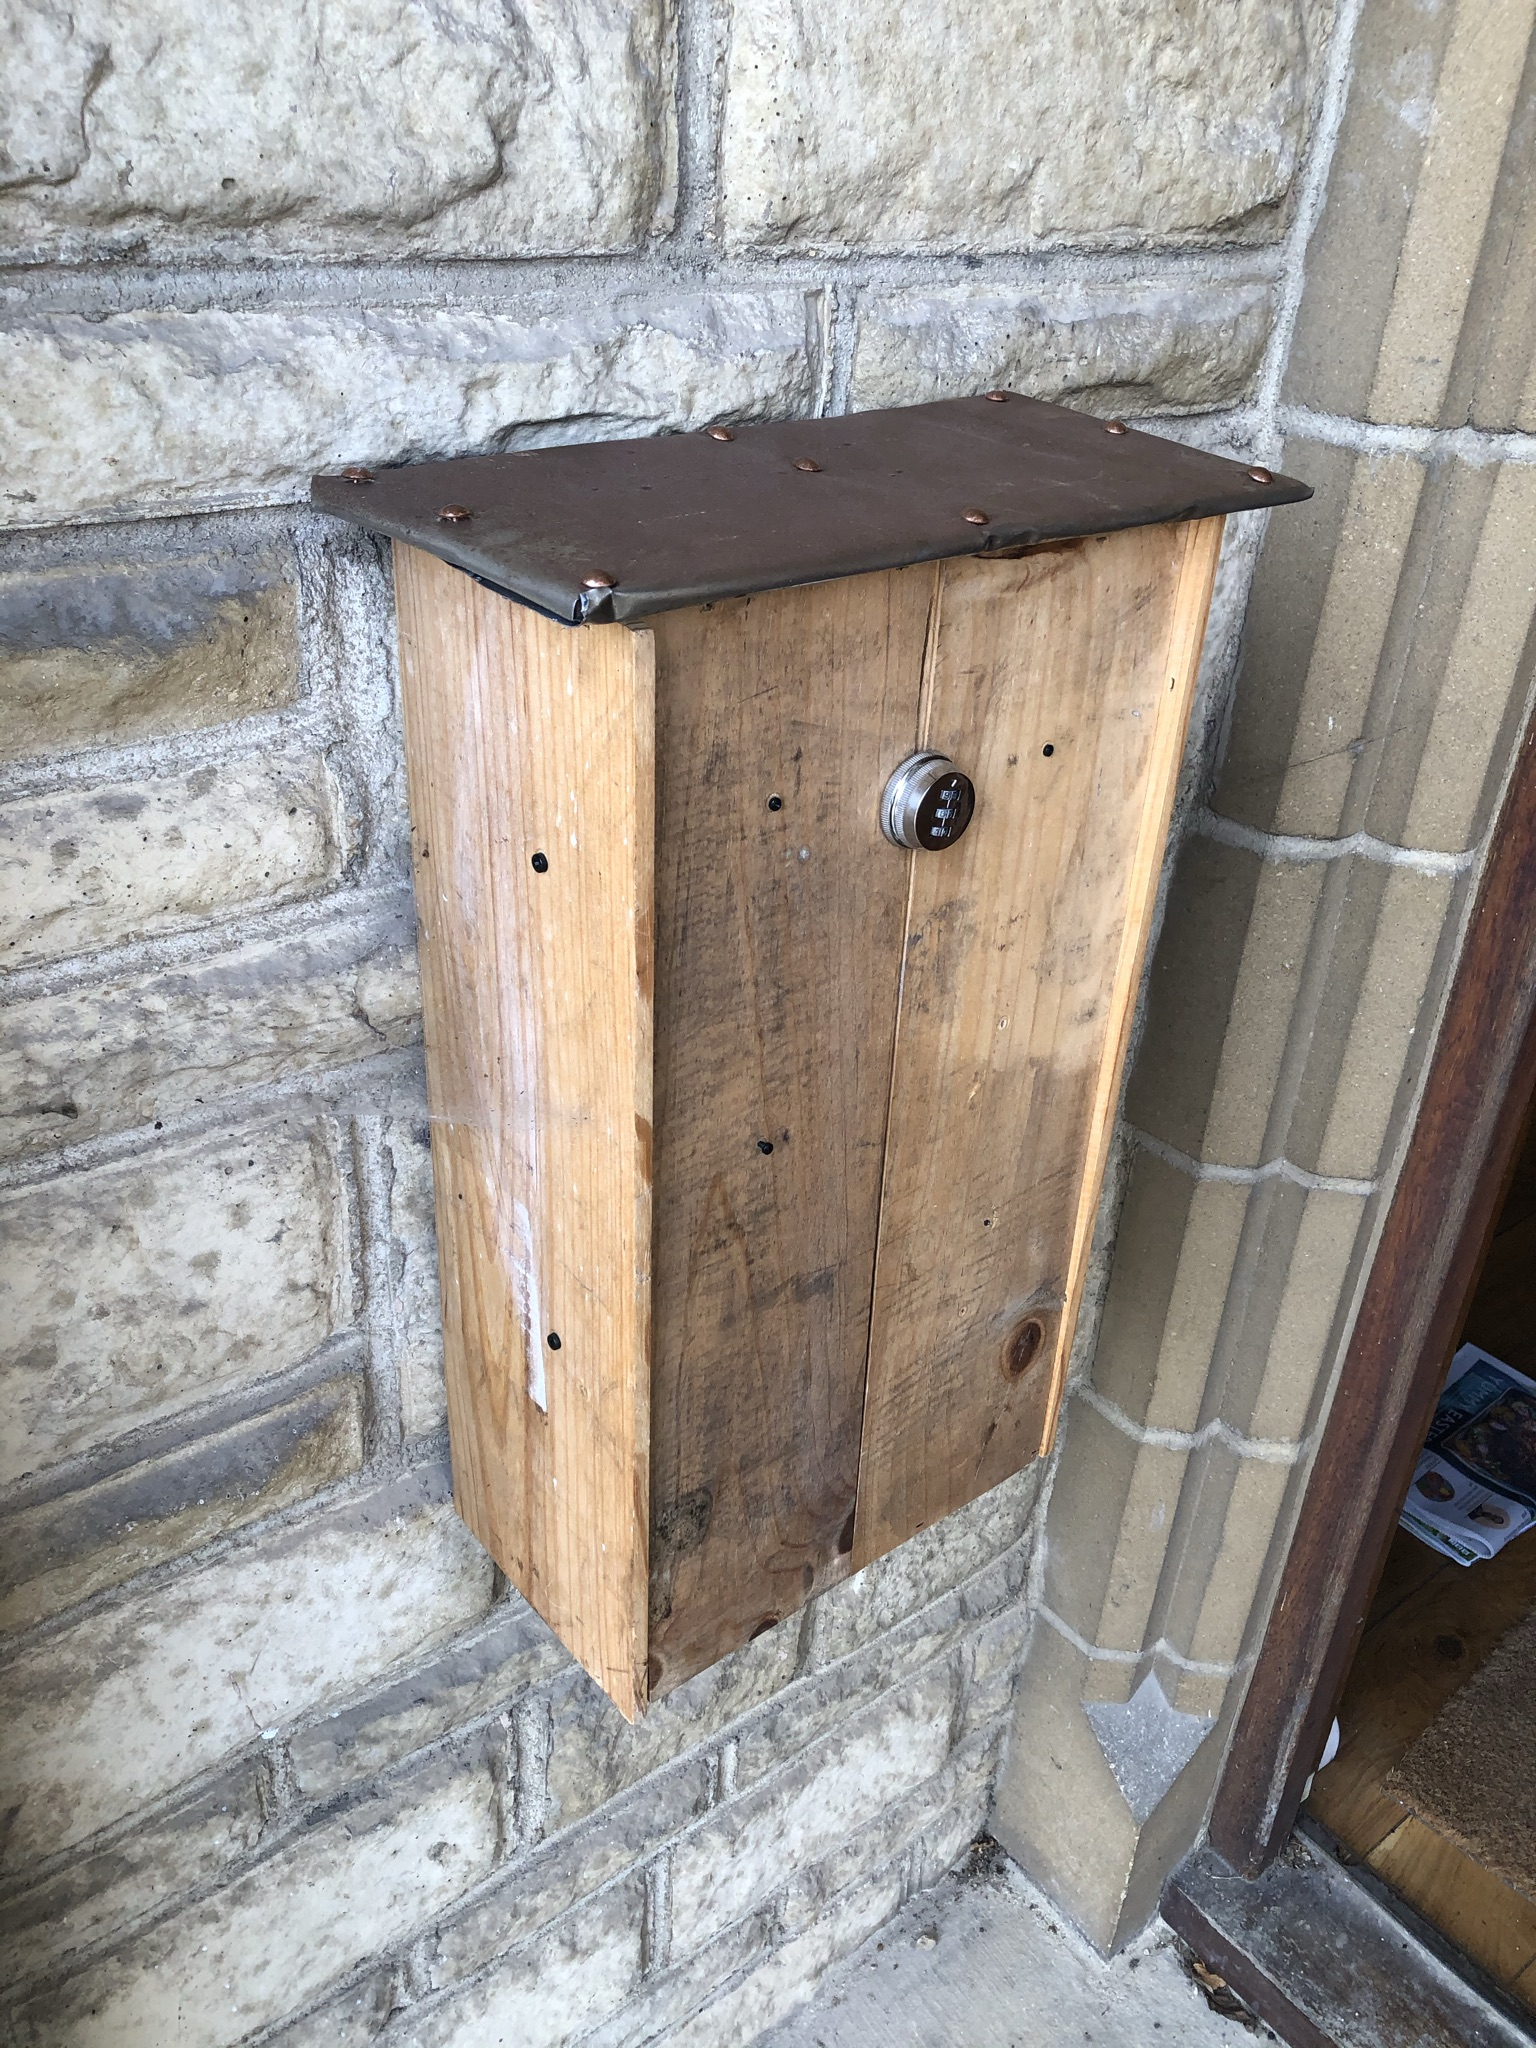 Chateau wine box and varnish can post box (www.coolupcycled.com)